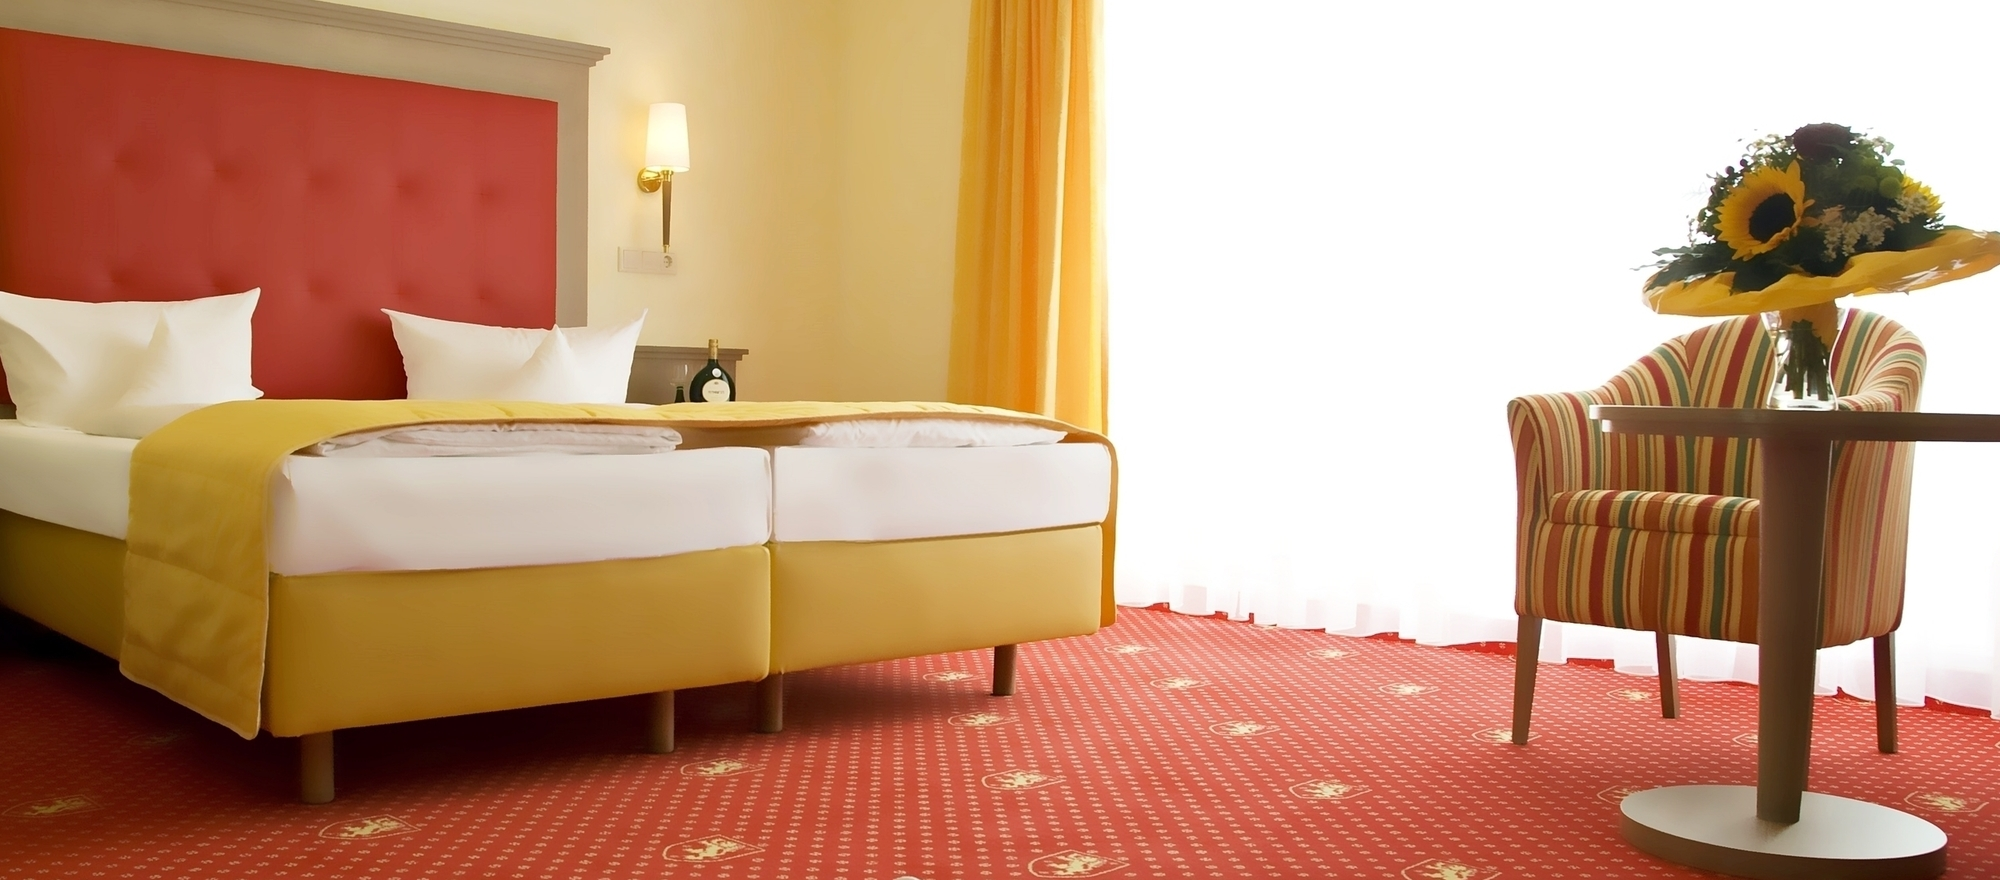 Bright, friendly rooms with seating area at the 3-star-superior hotel Ringhotel Wittelsbacher Hoeh in Wuerzburg